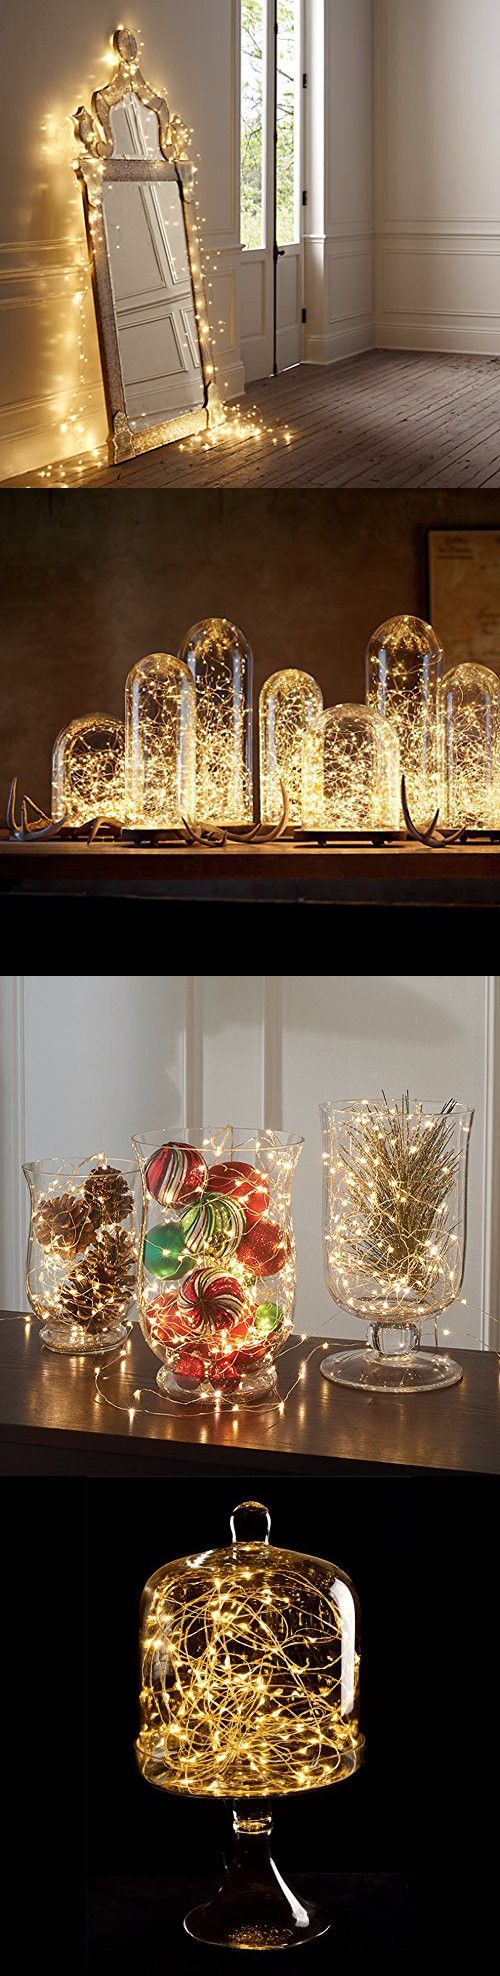 String Lights On Pinterest : 25+ best ideas about Led string lights on Pinterest Christmas string lights, Led christmas ...